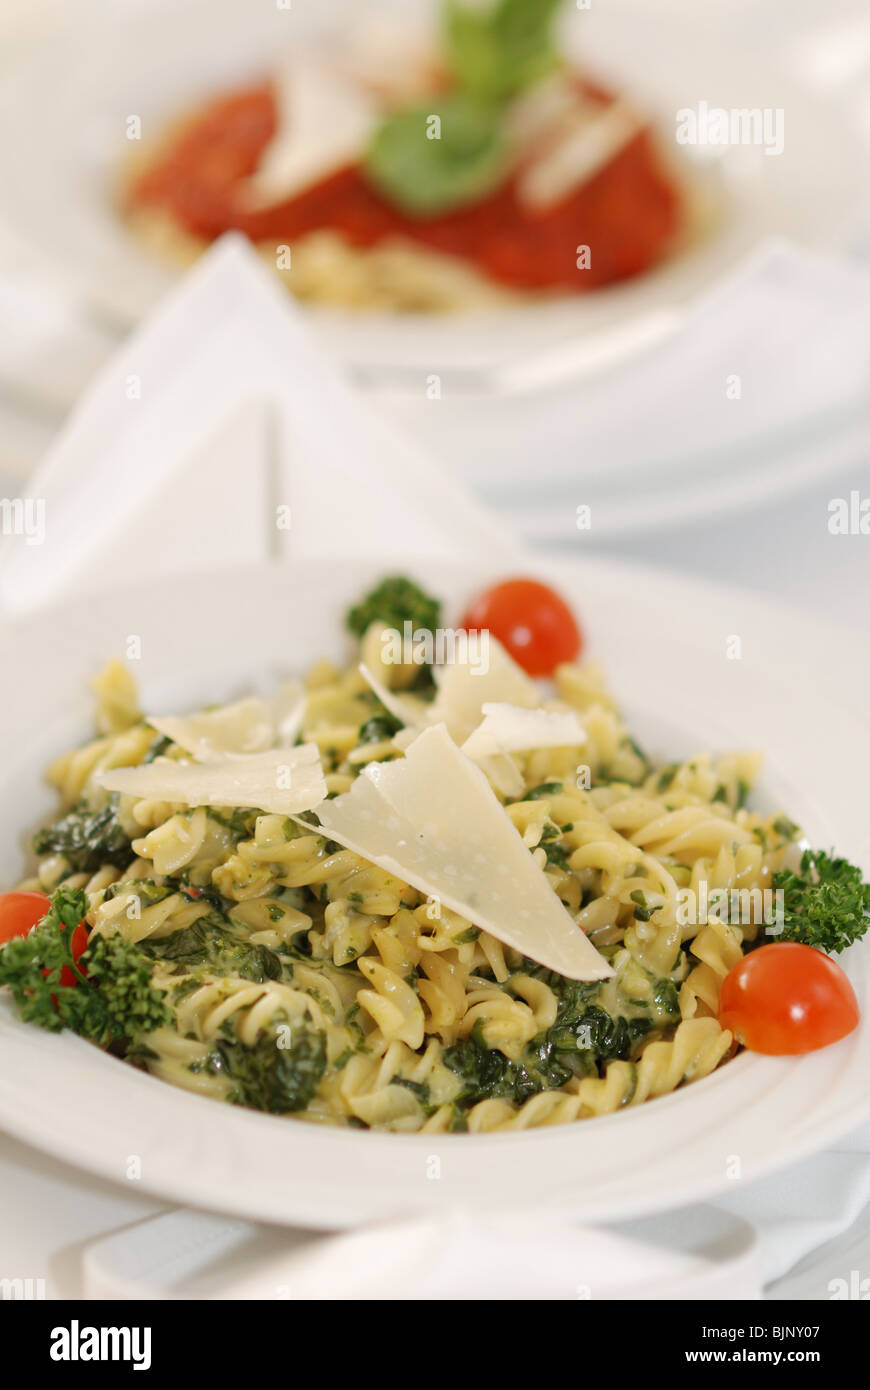 Pasta fussili with spinach and sauce of white wine and cheese - Stock Image